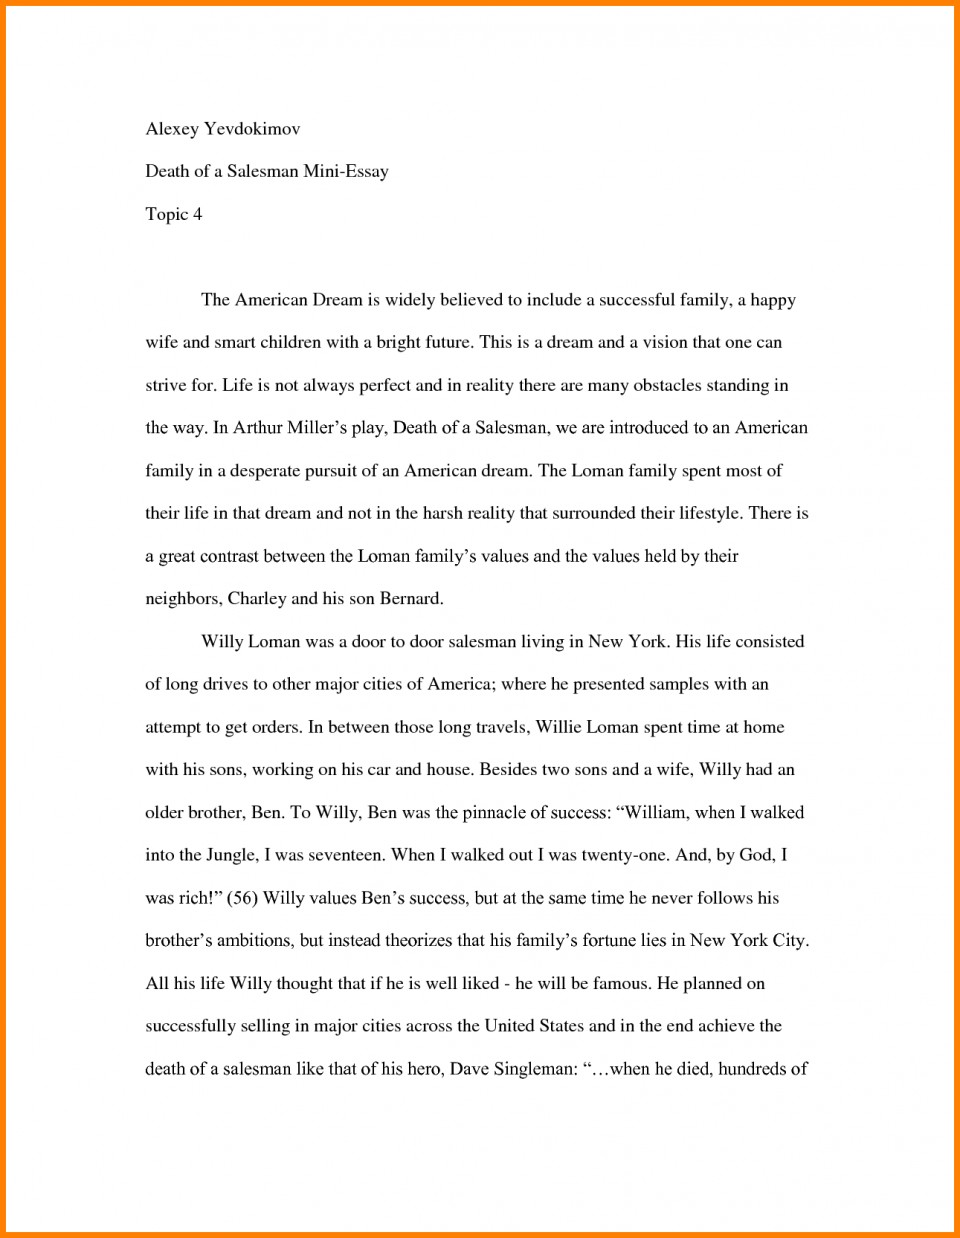 004 How To Start Off An Essay About Yourself College Awesome A Conclusion Application 960